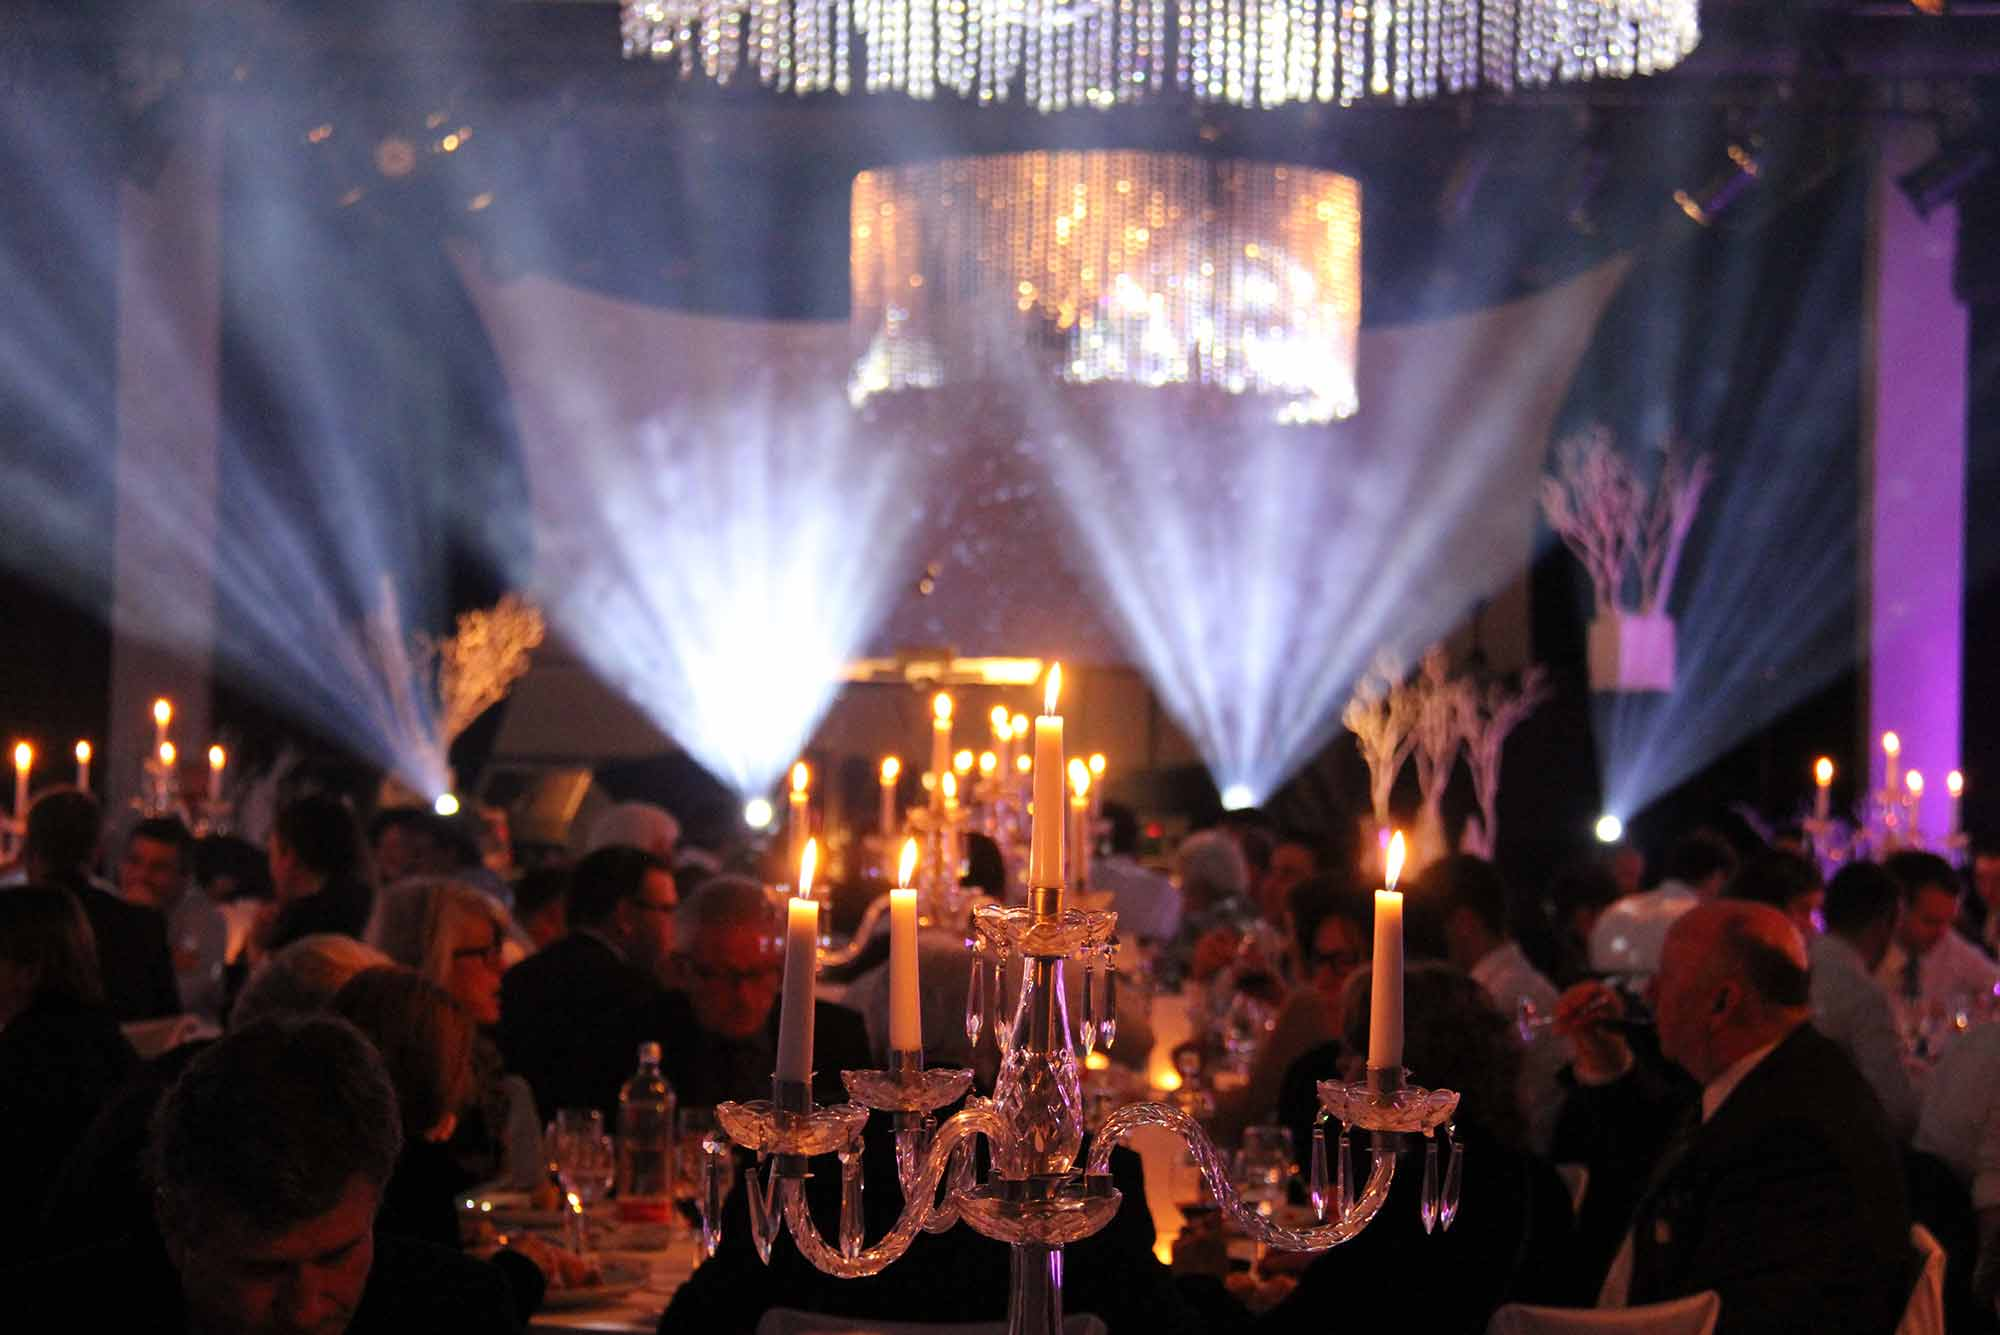 header-gala-1-meee-event-generalunternehmer-generalunternehmung-agentur-catering-events-firmenevent-corporate-eventlocation-zuerich-schweiz